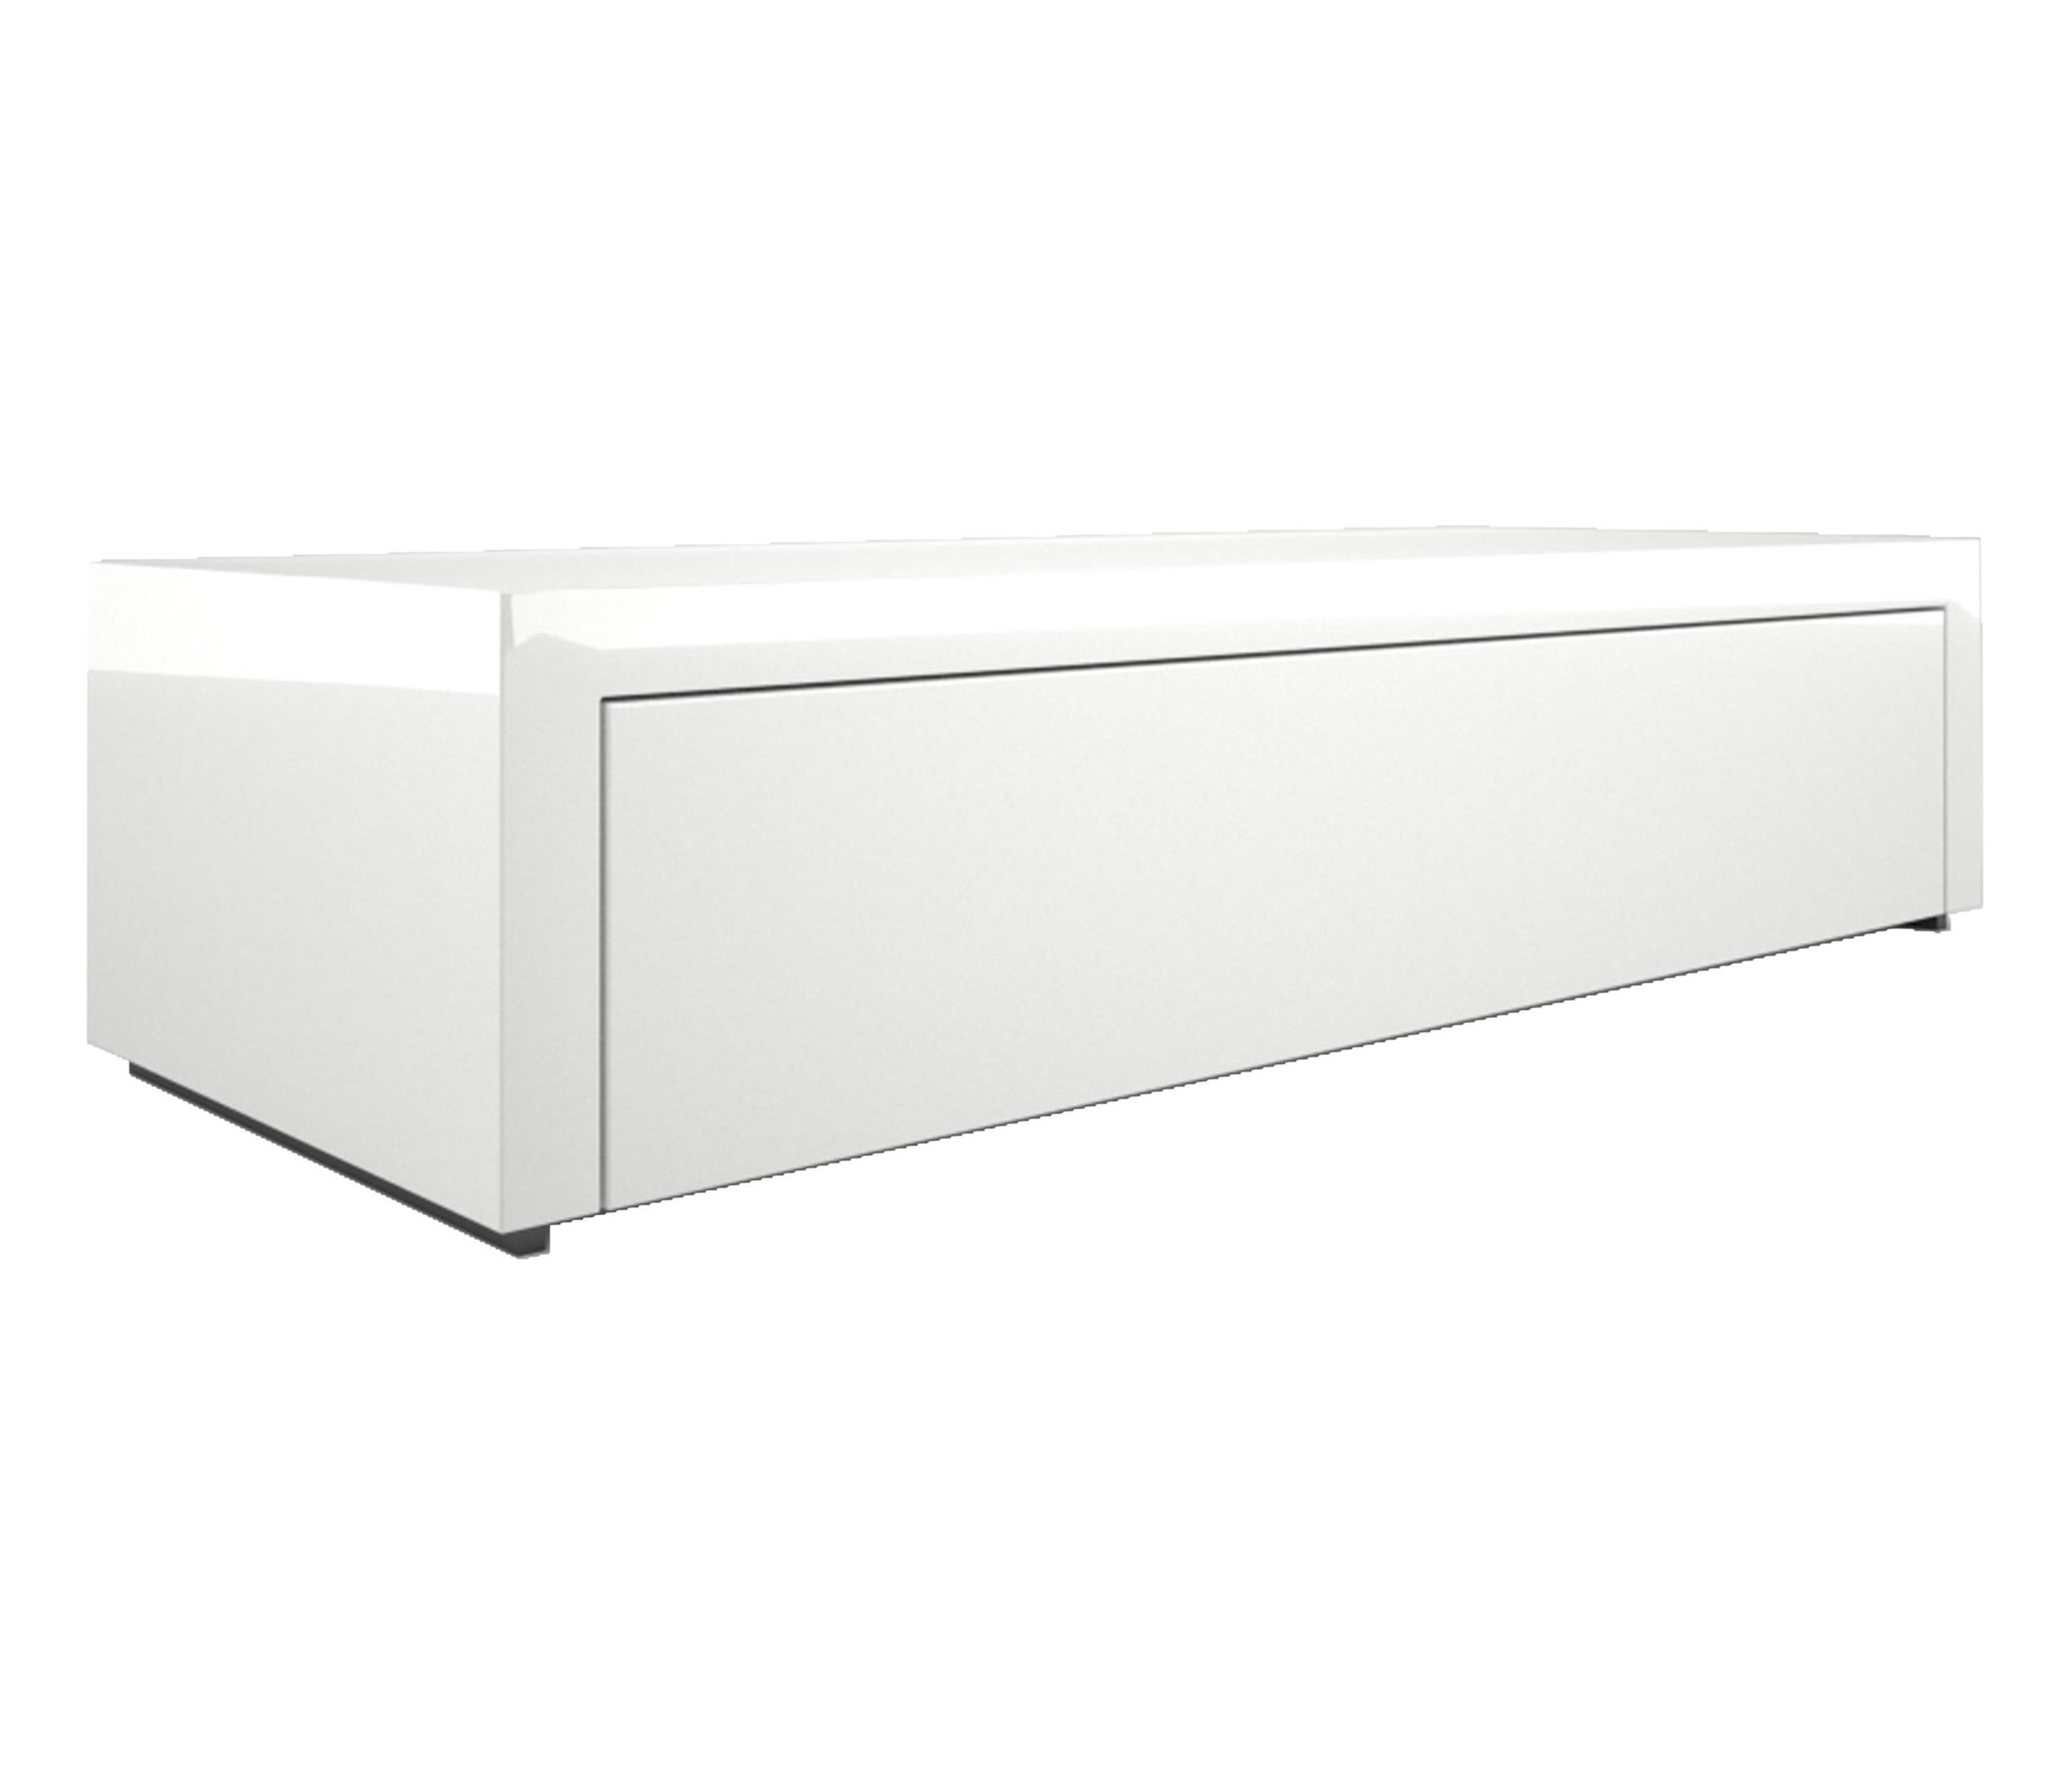 Flaches Sideboard Repositio Tv Hifi Kommode Sideboards Kommoden Von Rechteck